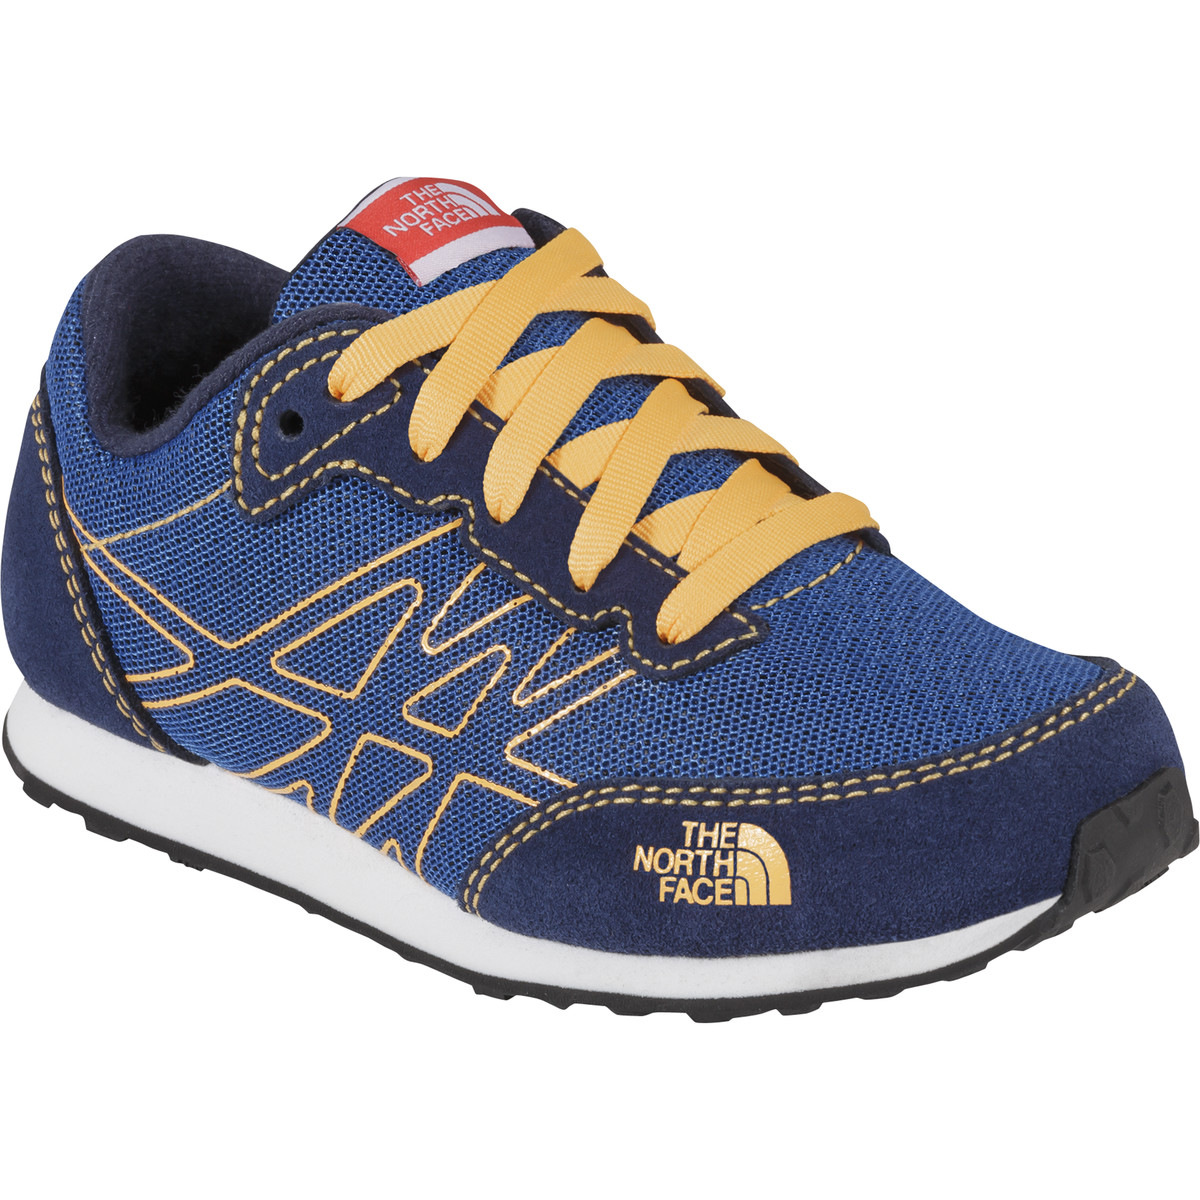 The North Face Kilowatt Shoe